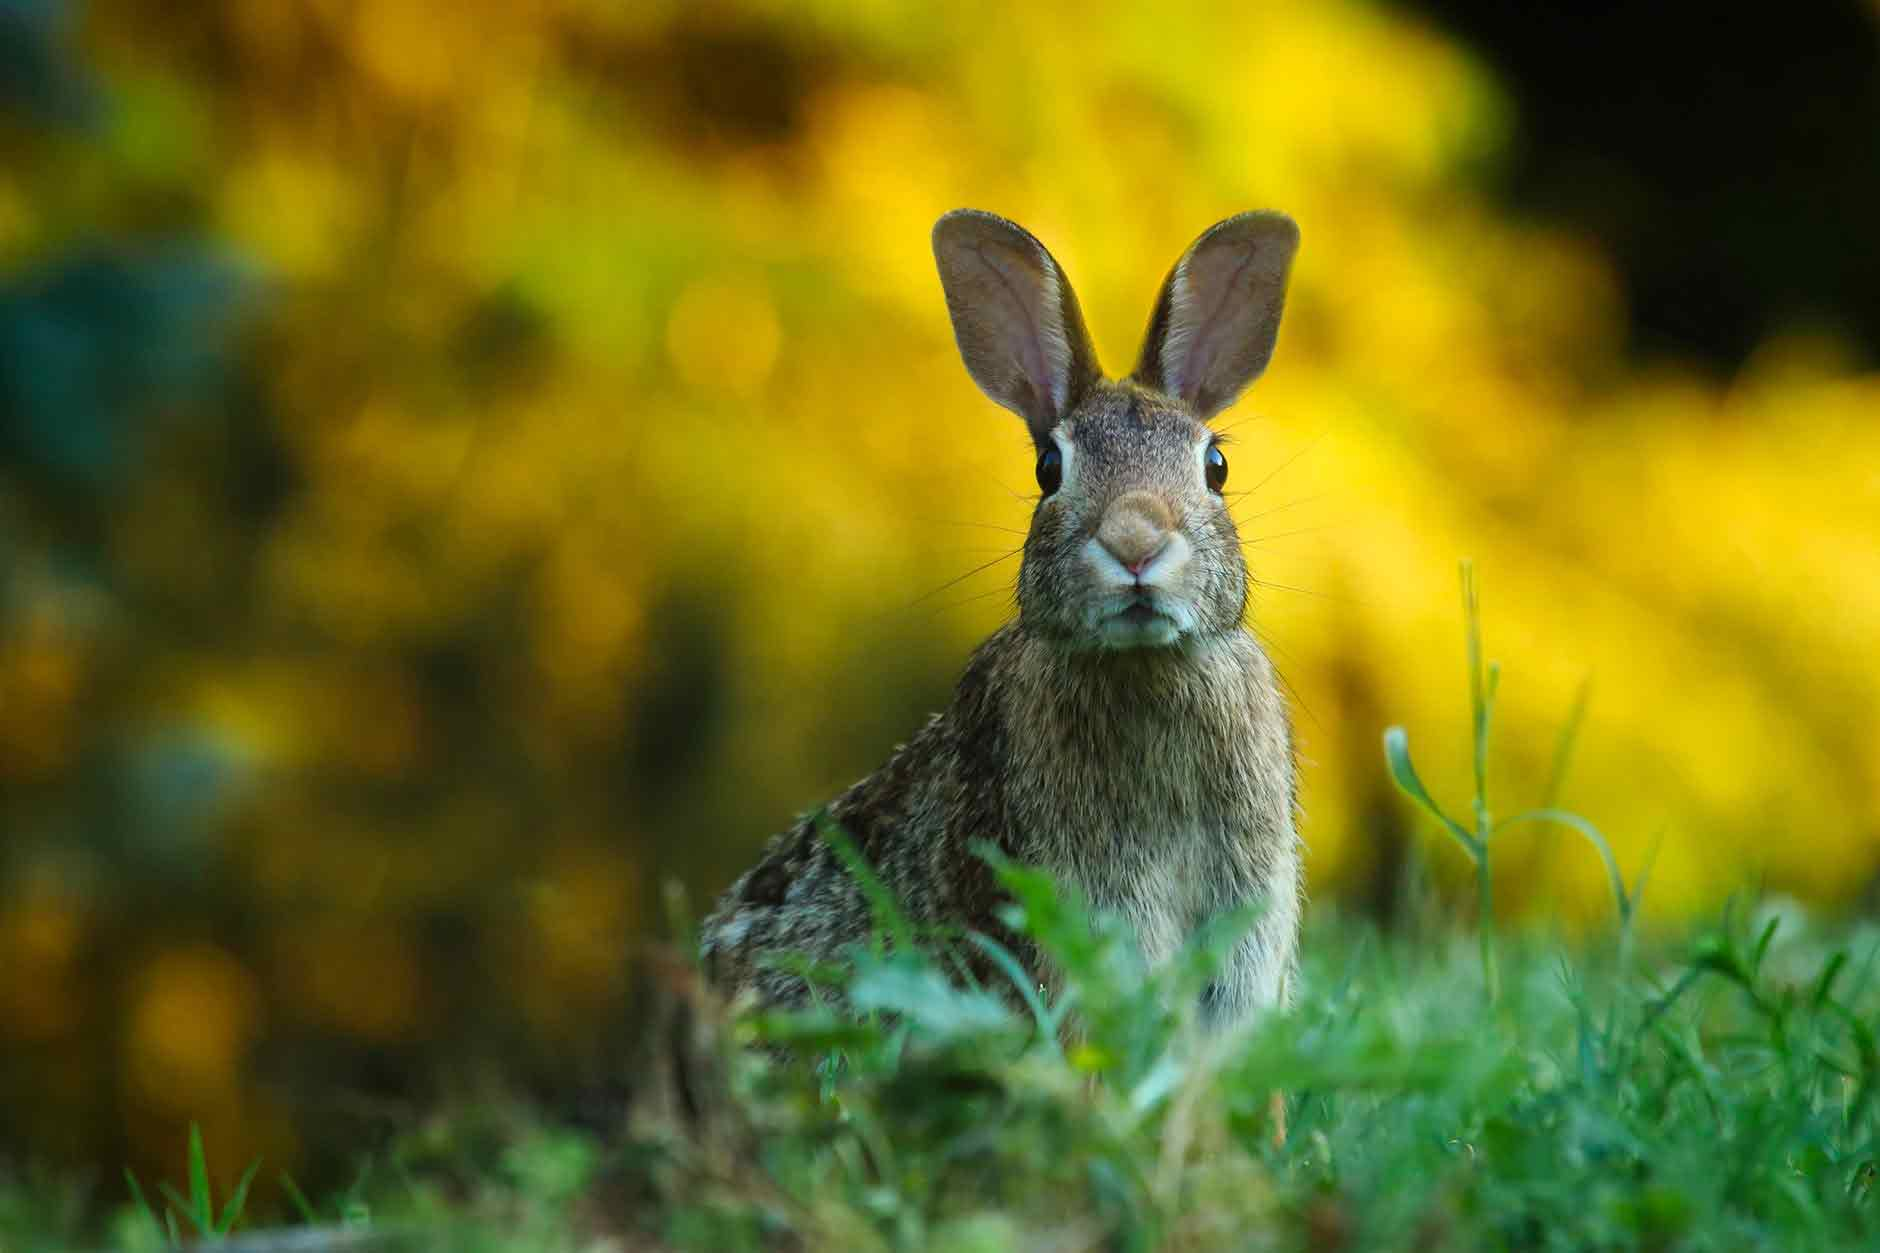 What is your favorite quote from 'Watership Down'?